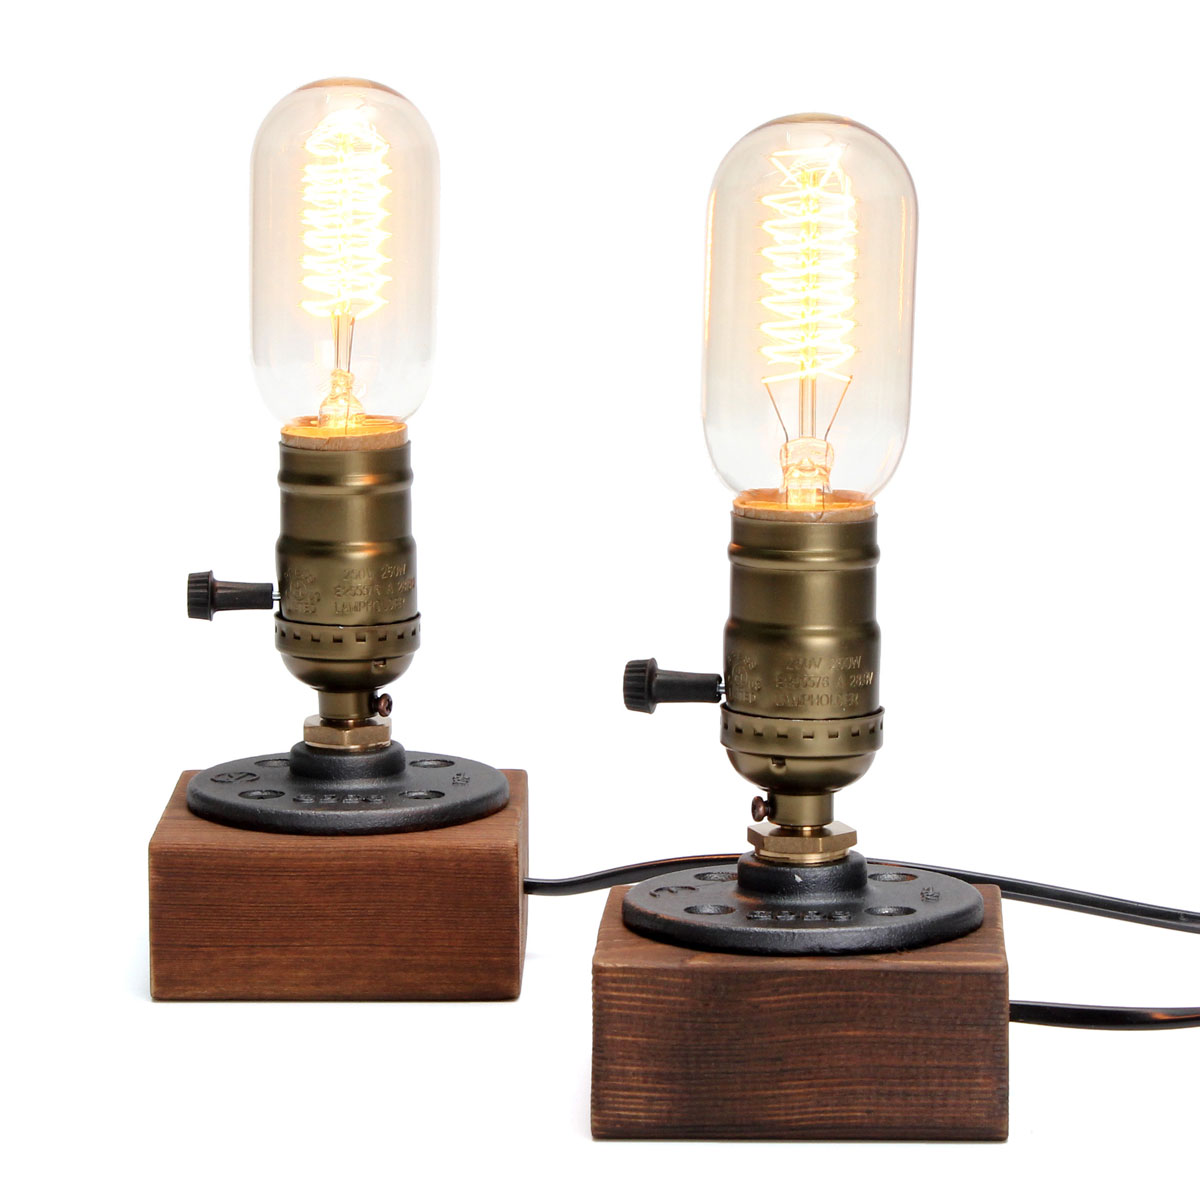 Vintage Desk Light Table Lamp Edison Bulb E27 40W Industrial Retro Wooden Socket Lighting Fixture Dimmable Cafe Decor 110V-220V american style retro table lamp wooden base desk light contain led bulbs cafe bar table lamps industrial mesa art deco lighting